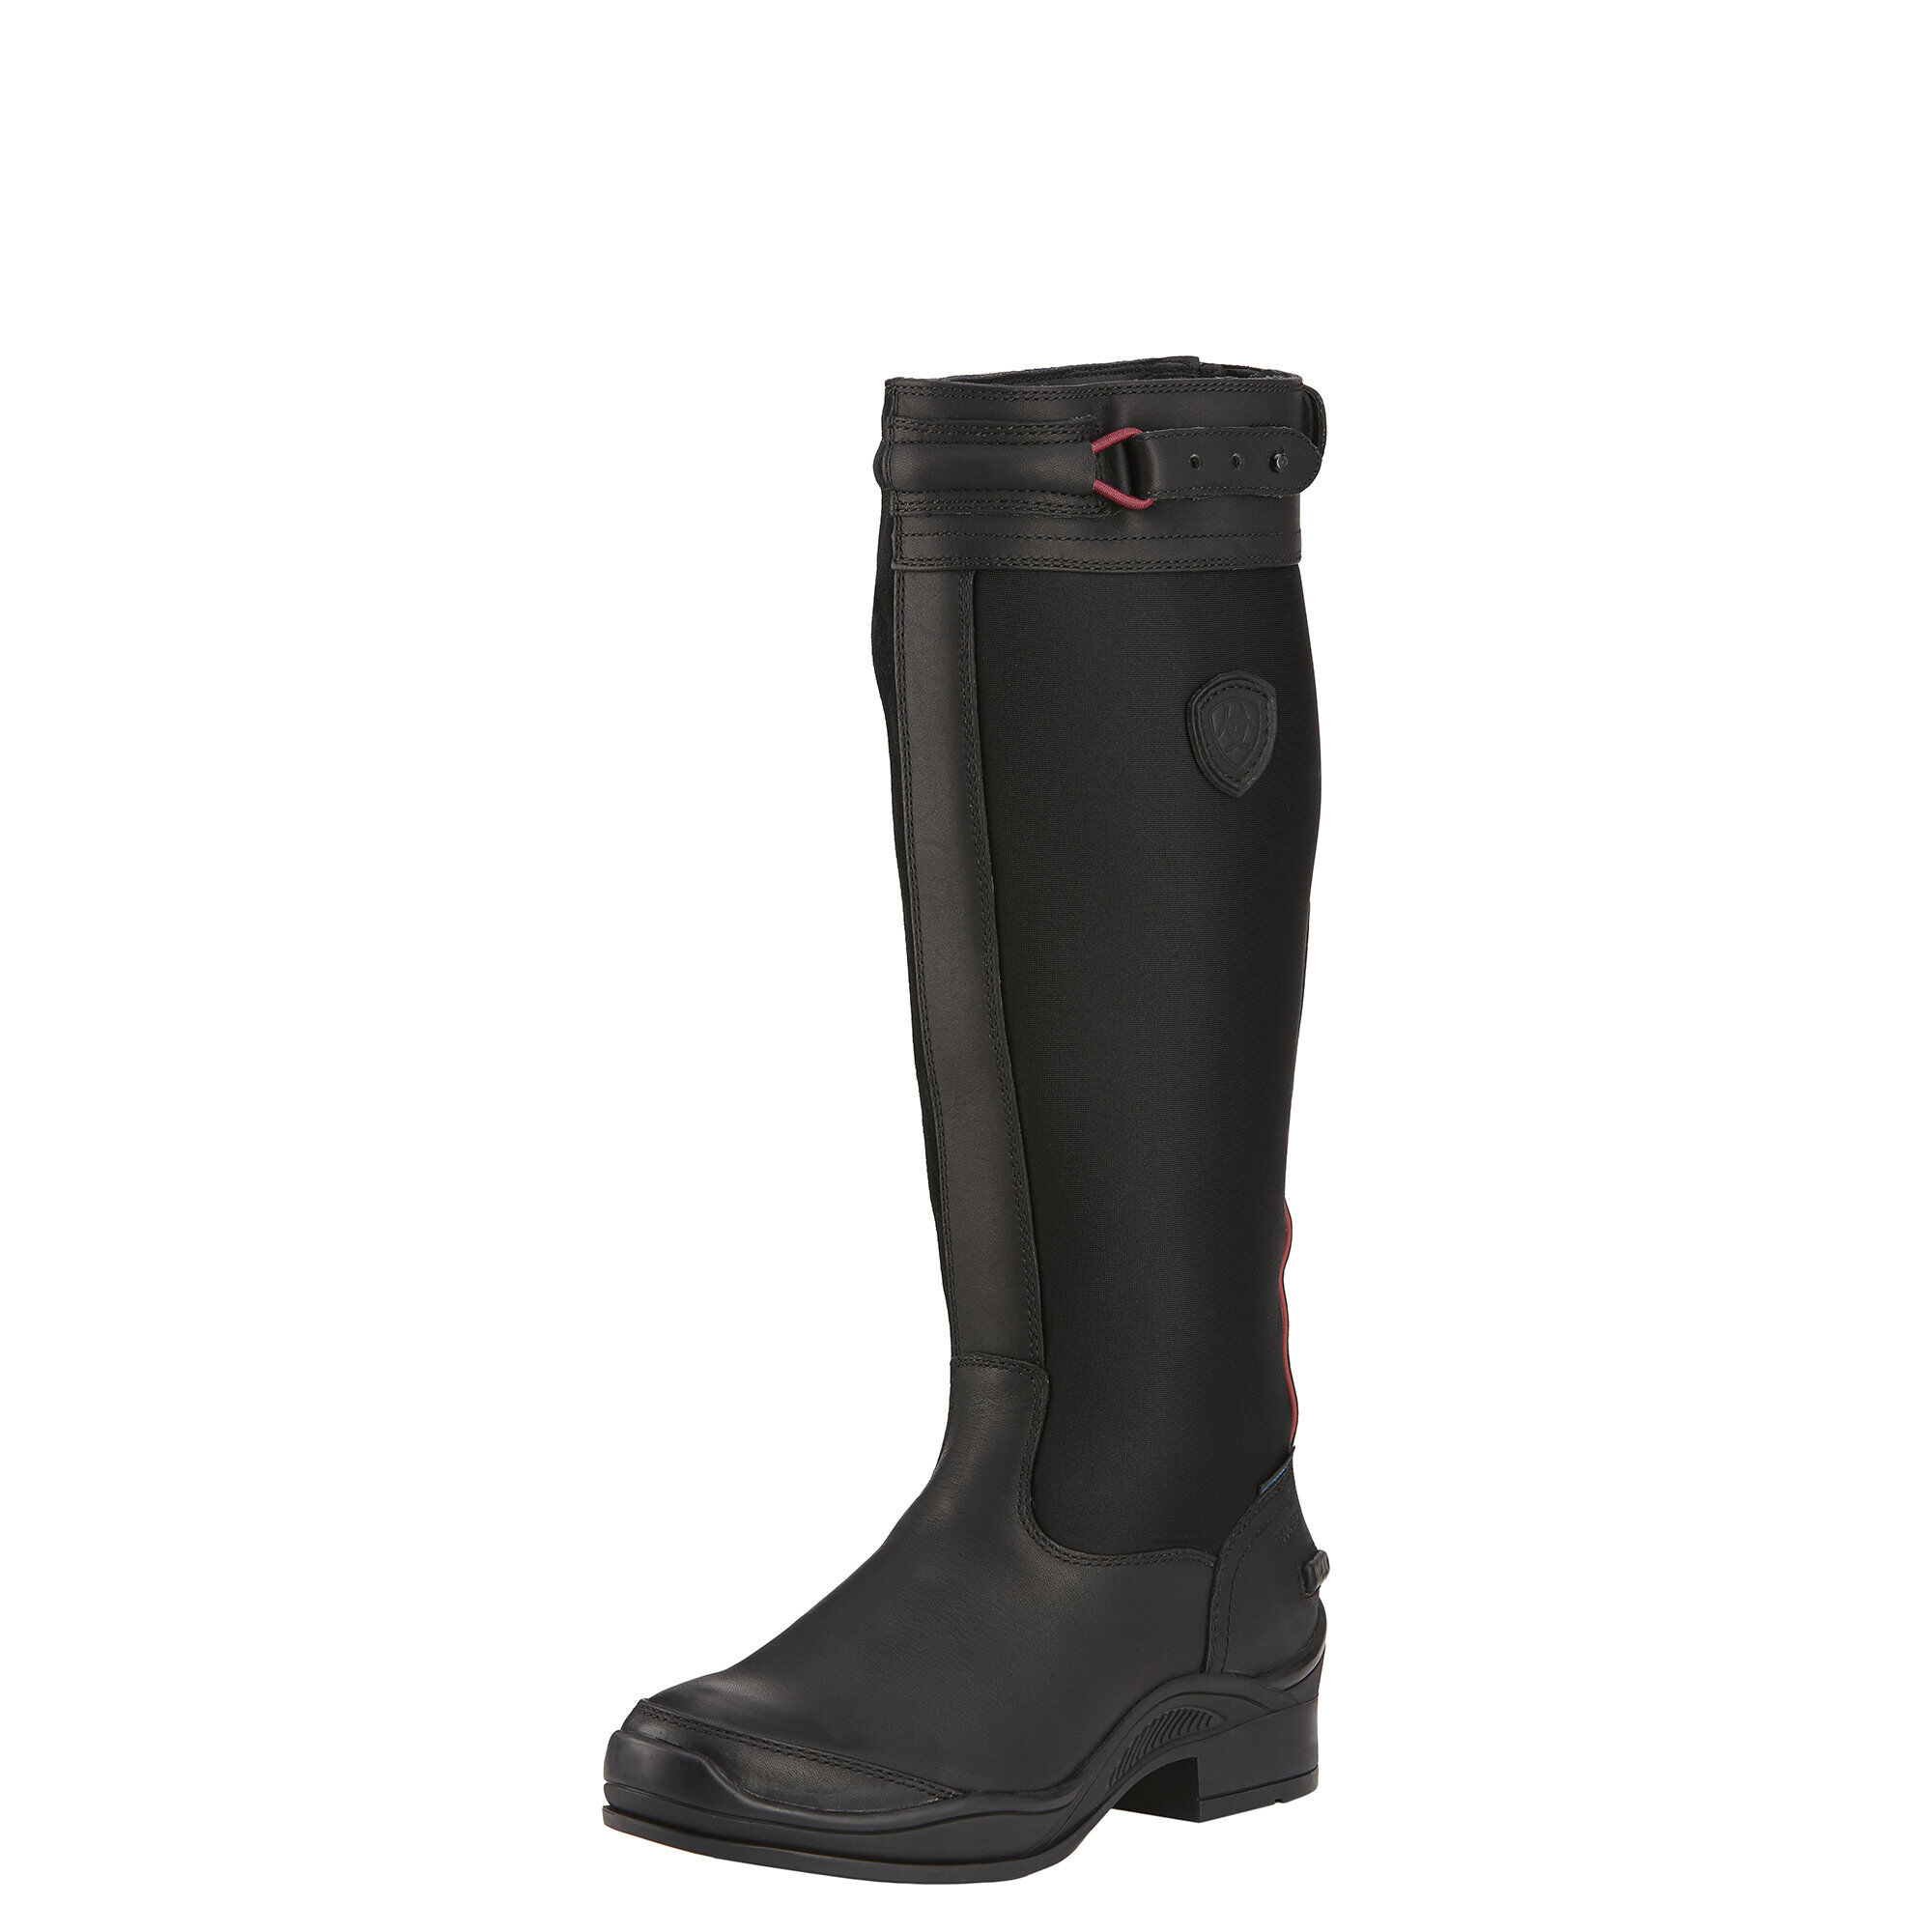 05 Latest Ariat Glacier Womens Insulated Tall Boot  Blackc